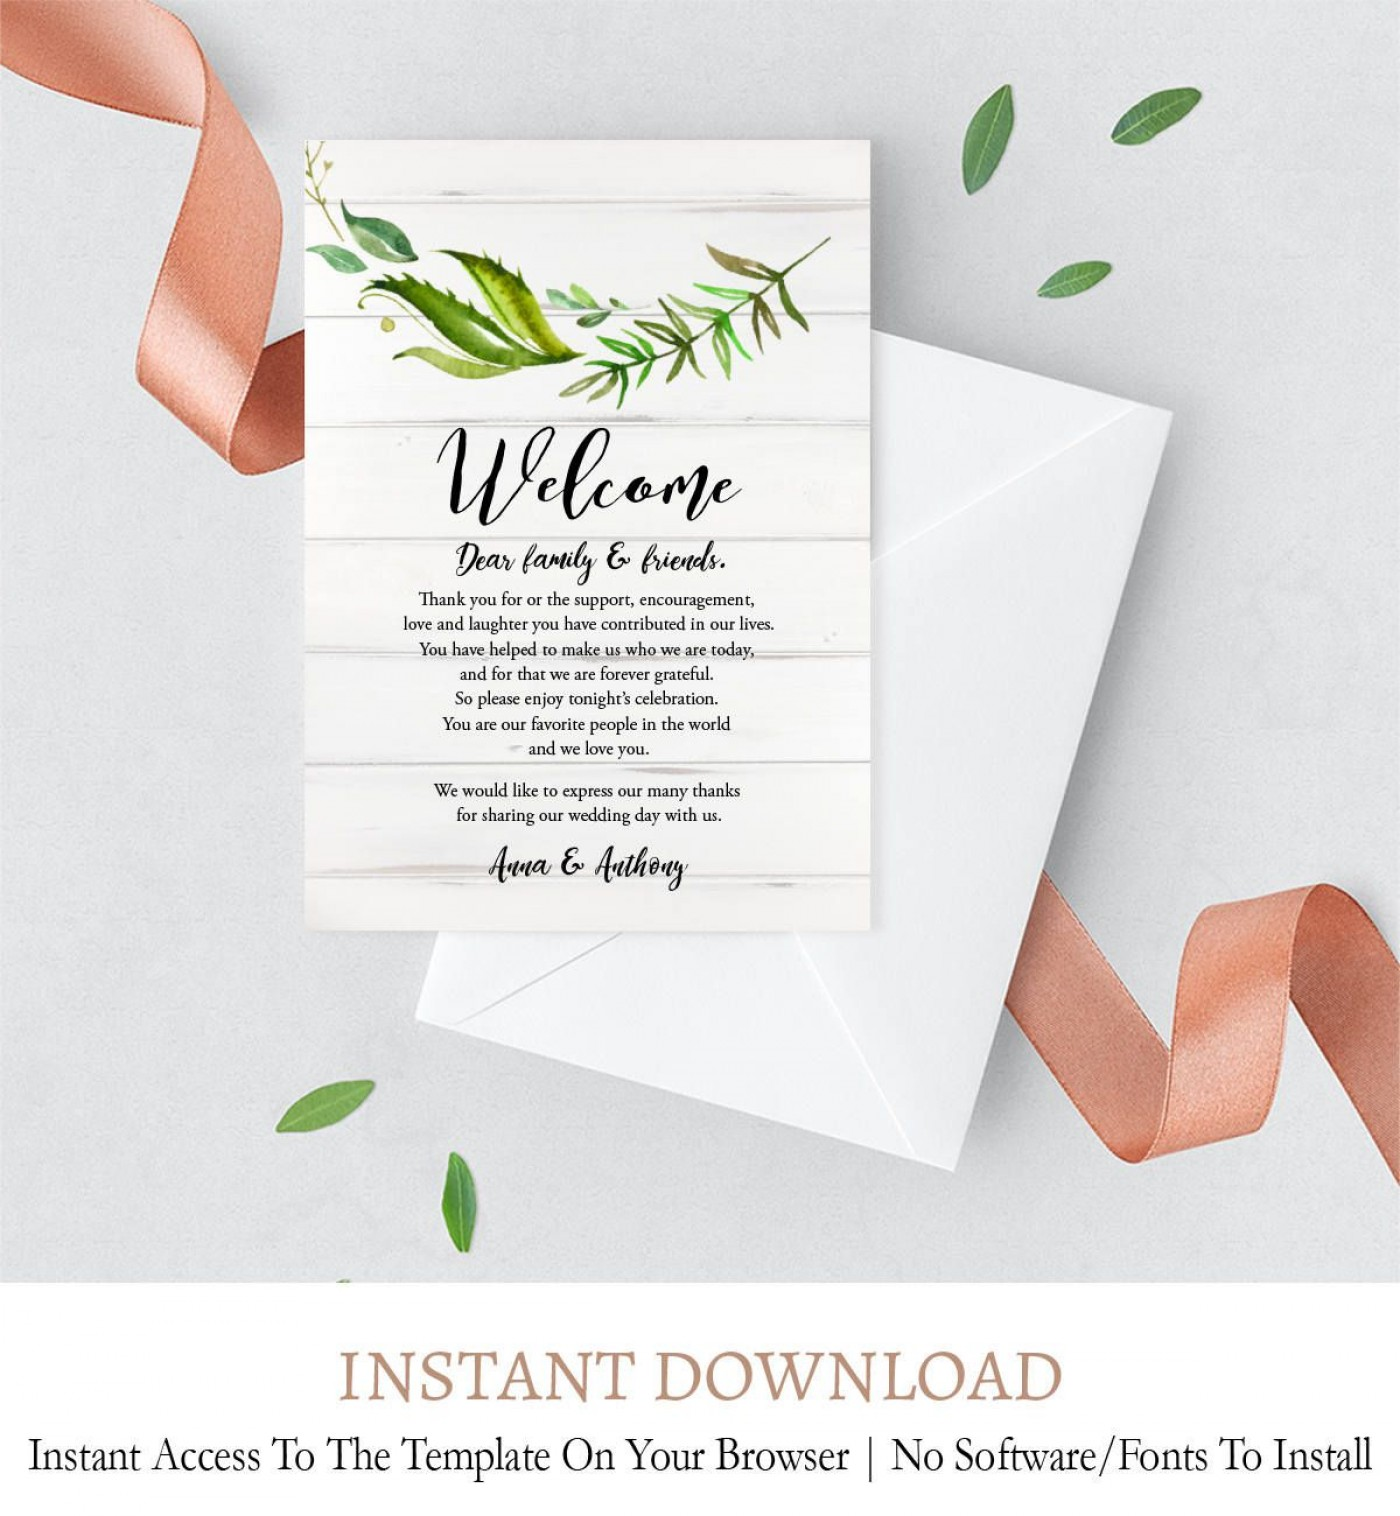 006 Incredible Wedding Weekend Itinerary Template Picture  Day Timeline Word Sample1400